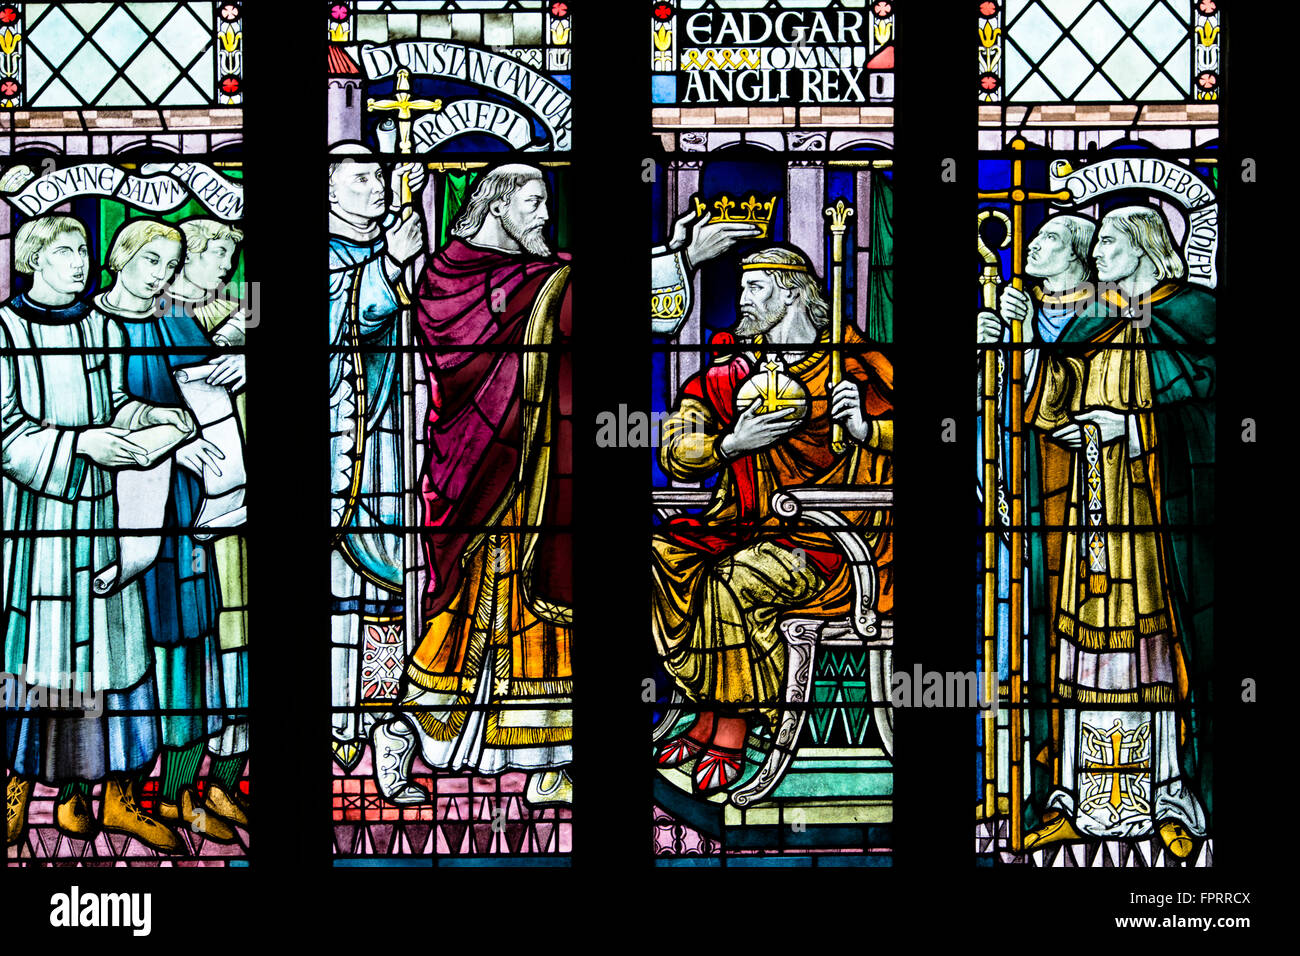 19th century stained glass showing the coronation of King Edgar, Bath Abbey. Edgar was the first king of England, - Stock Image